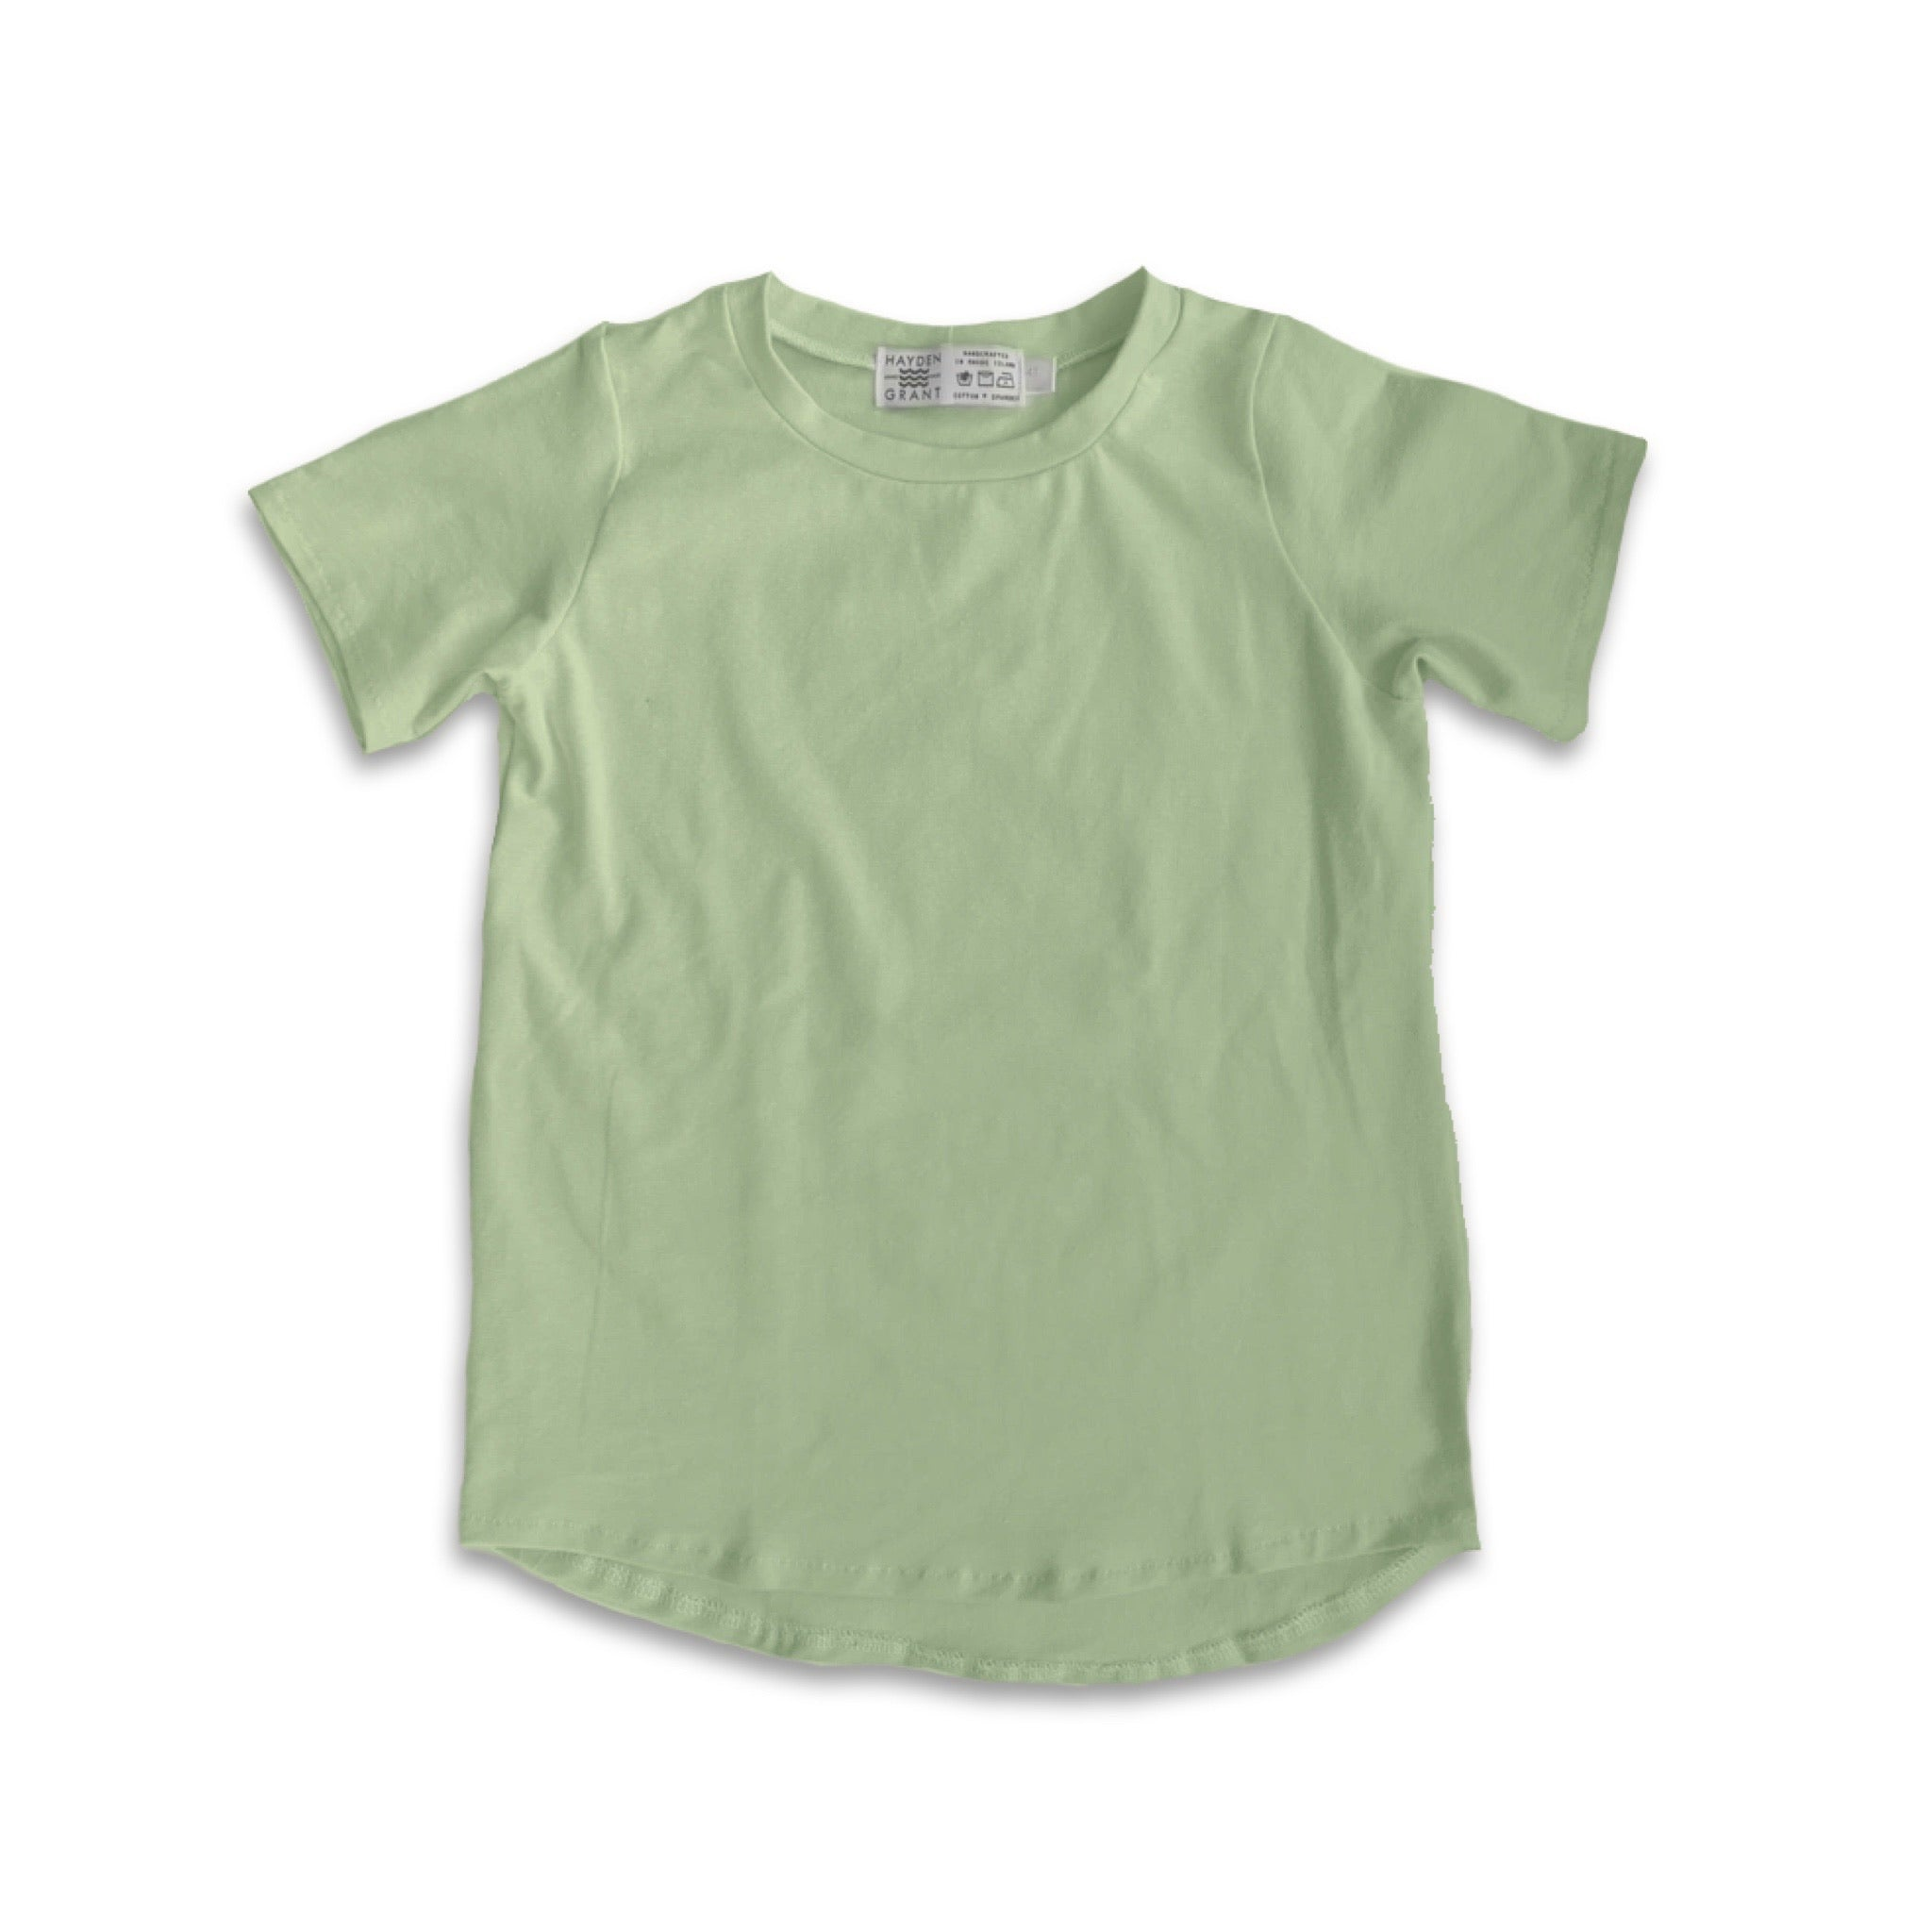 Curved Hem Tee in Green Tea (choice of sleeve length)